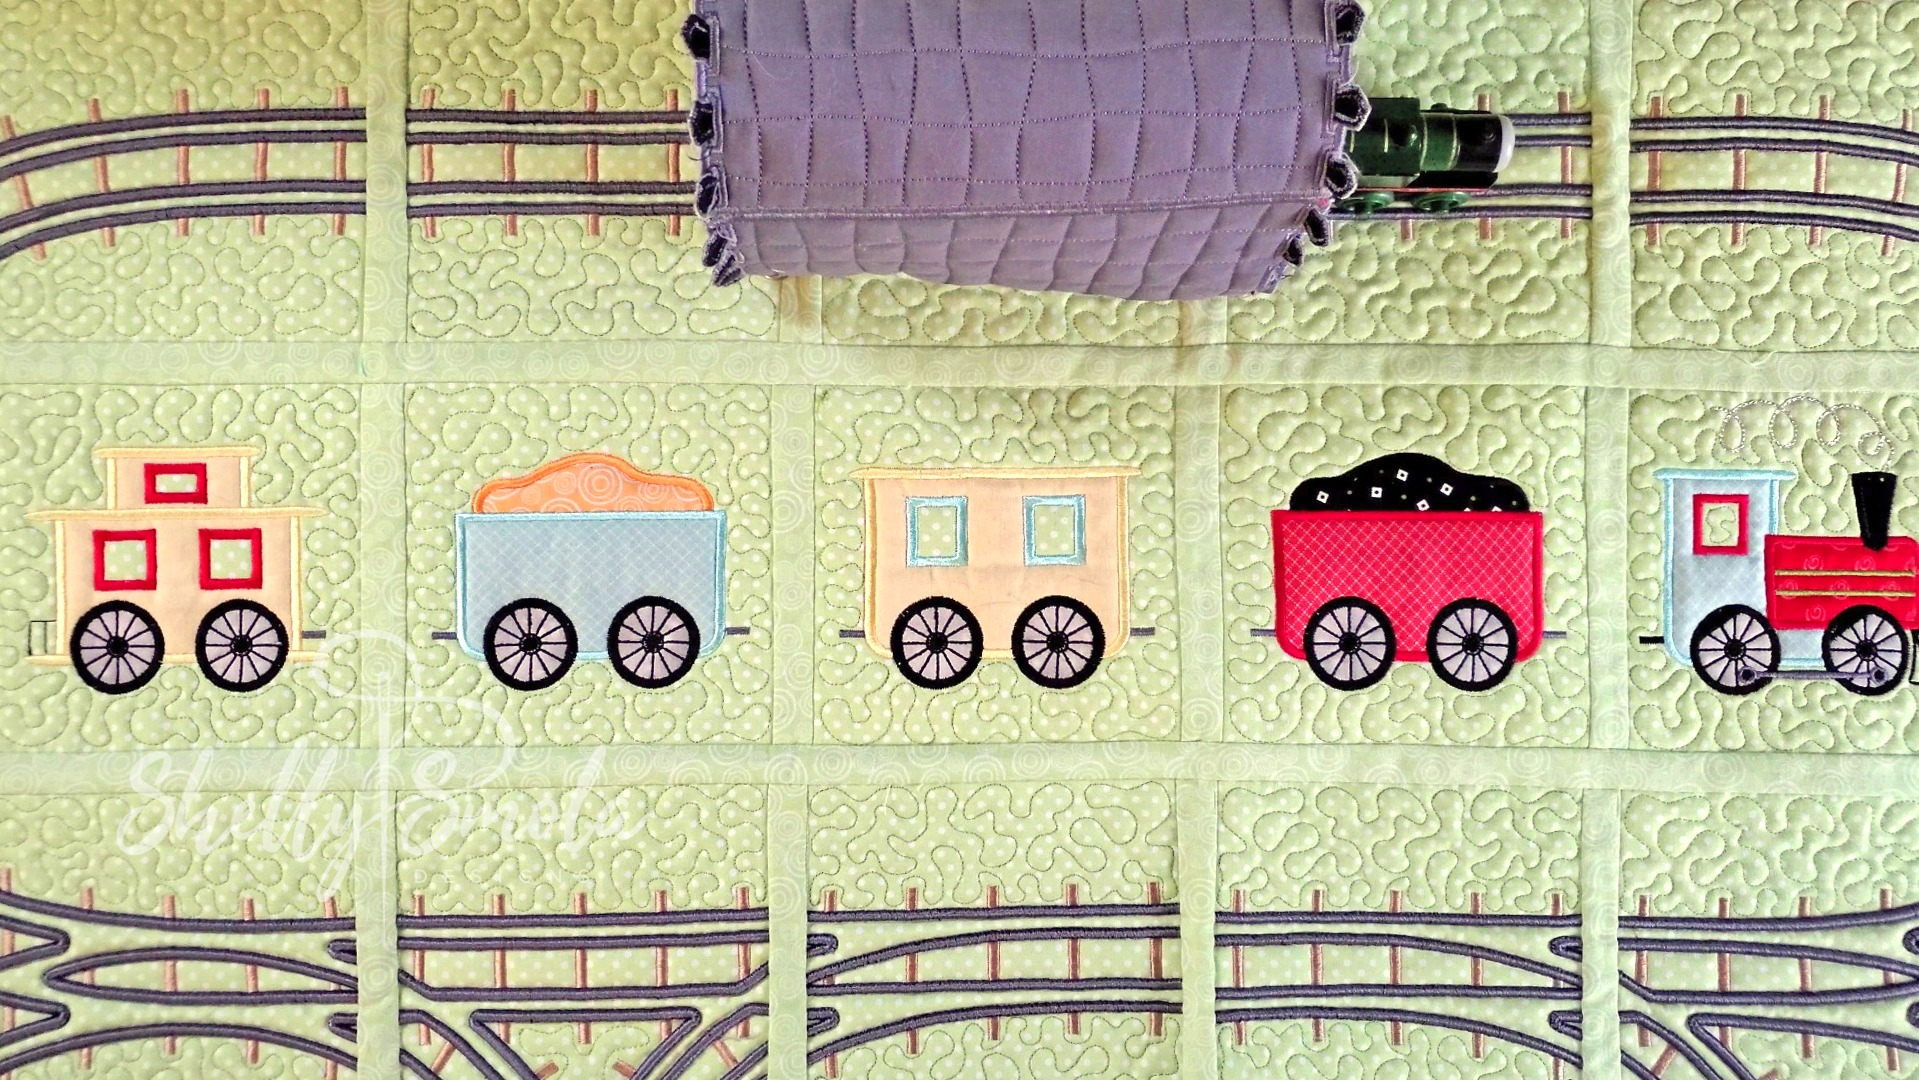 Bedtime Rail Line Tunnel by Shelly Smola